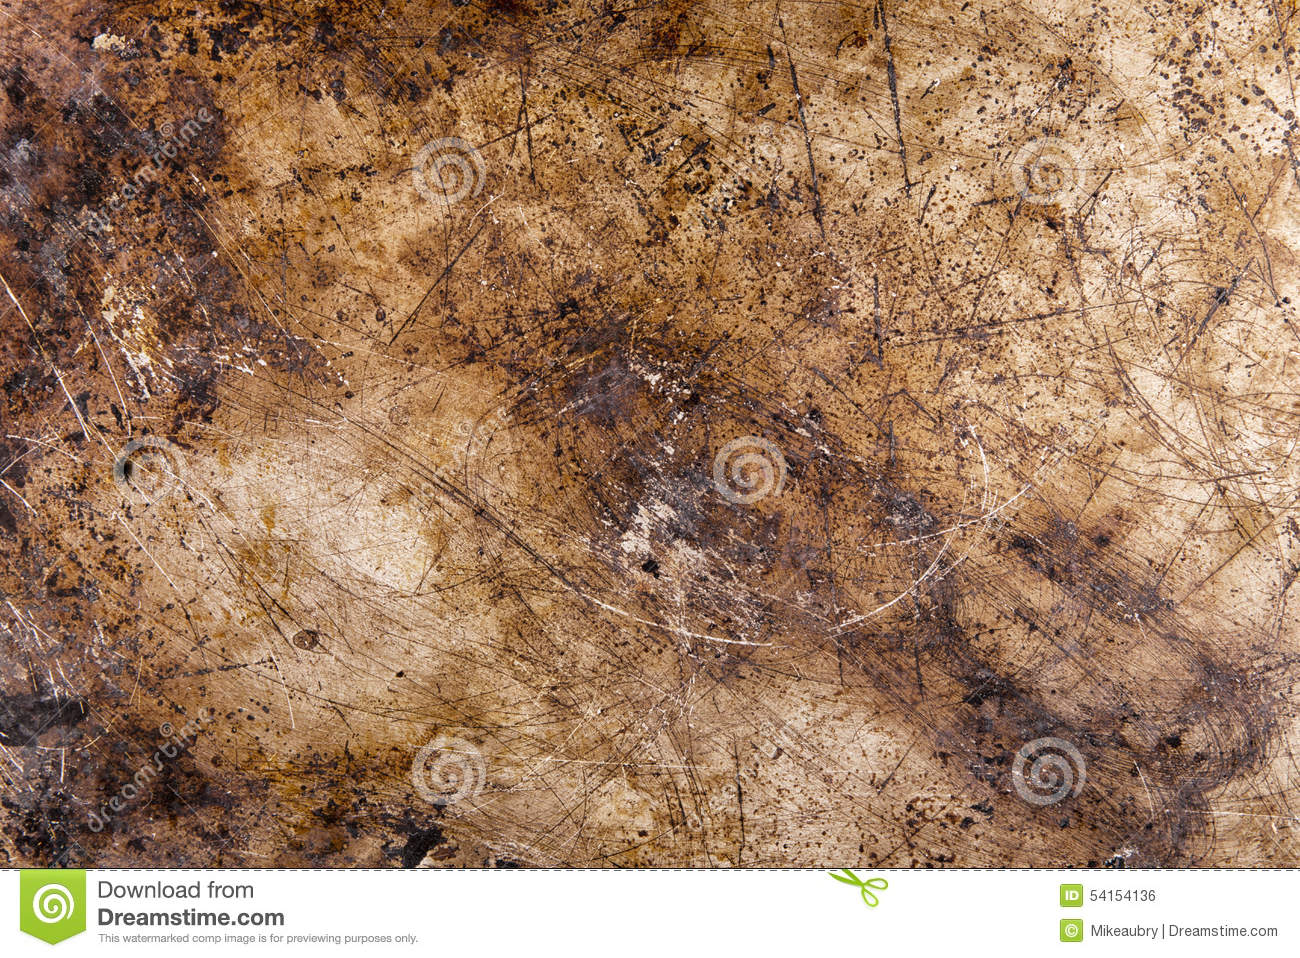 Jpg Texture Background Free Stock Photos Download 105 545: Rusty Metal Texture Stock Photo. Image Of Grunge, Close